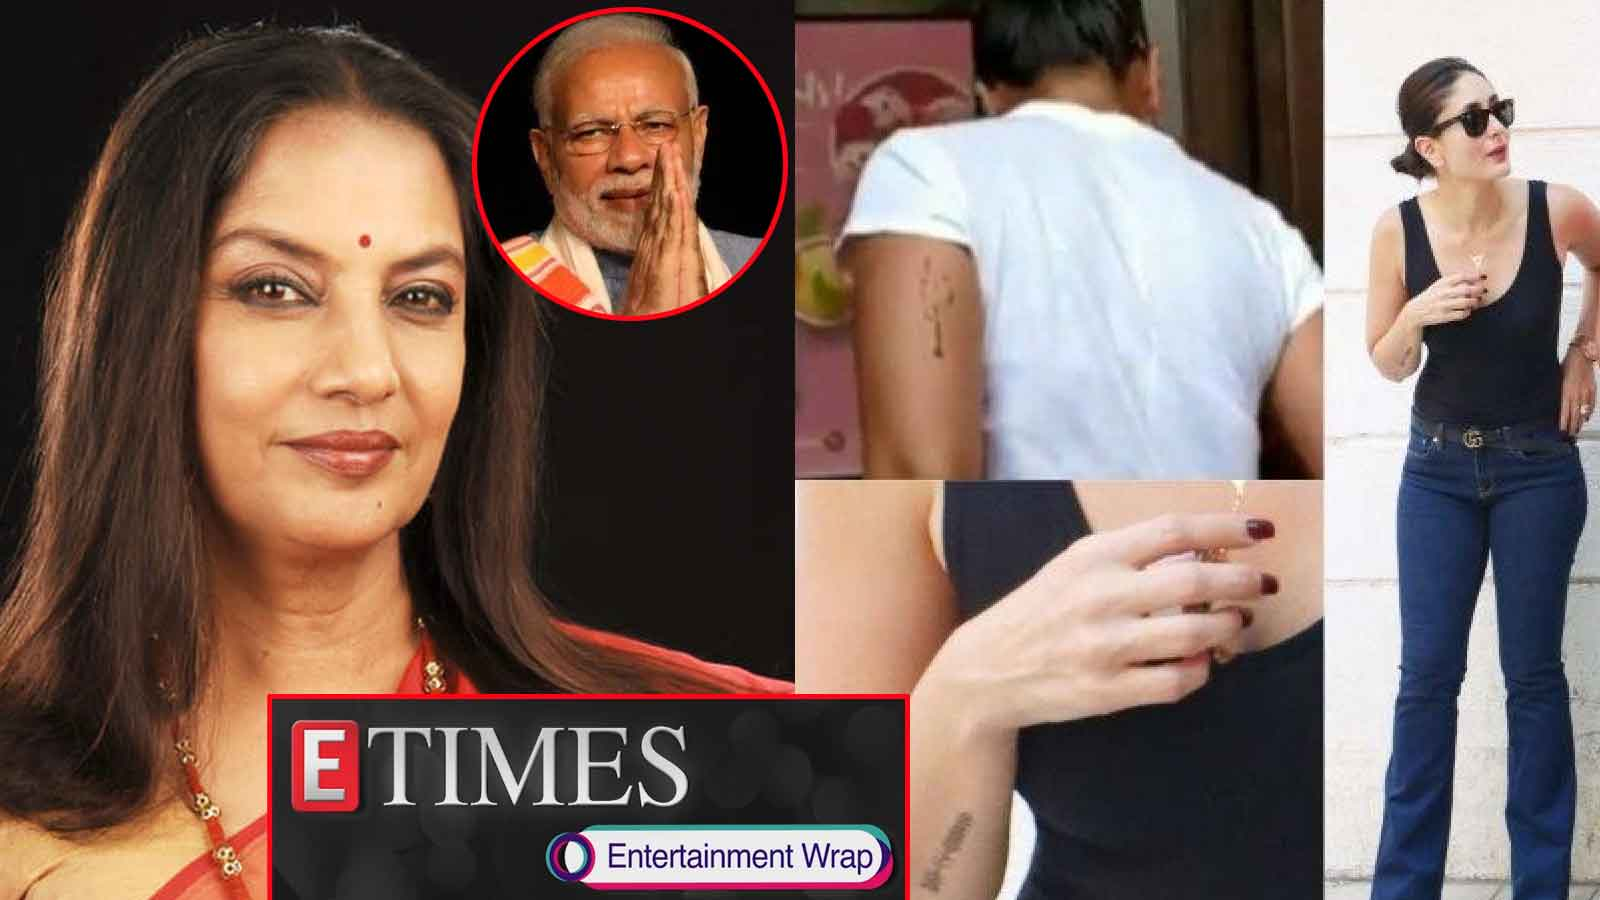 shabana-azmi-gets-trolled-after-congratulating-pm-narendra-modi-kareena-kapoor-khan-spotted-with-two-tattoos-and-more